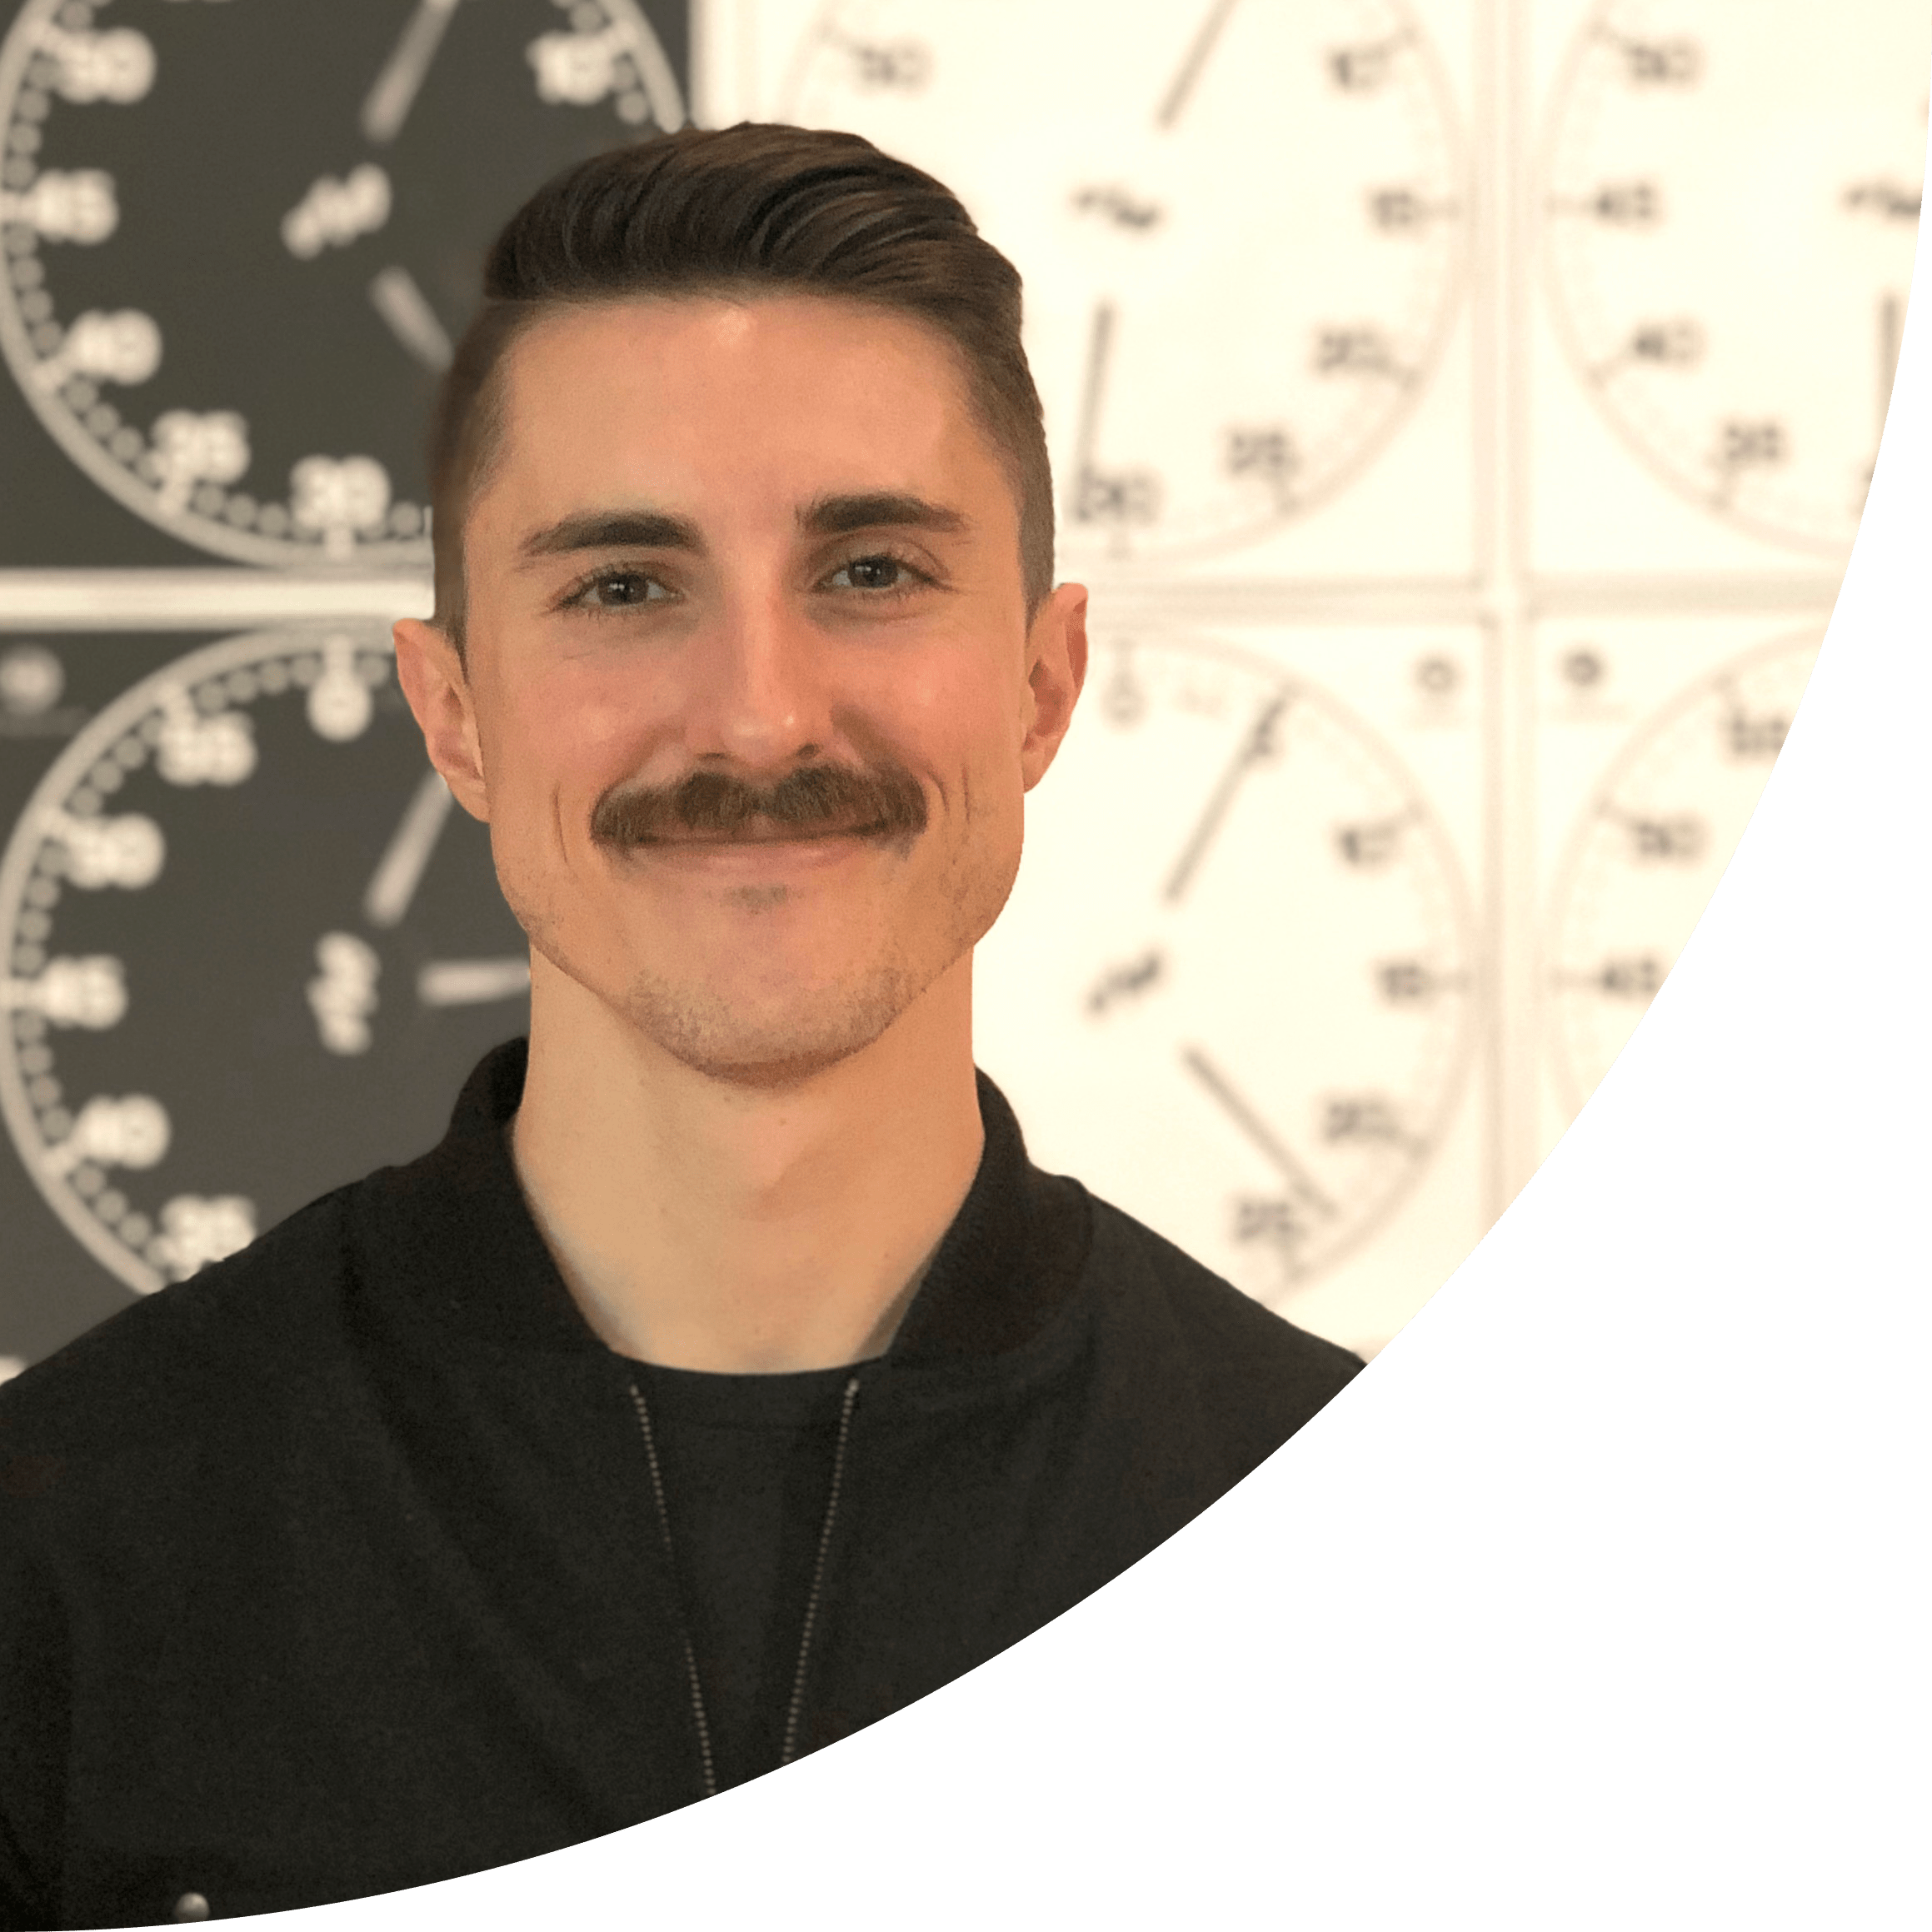 Joe Winter with a mustache smiling in front of clock photography